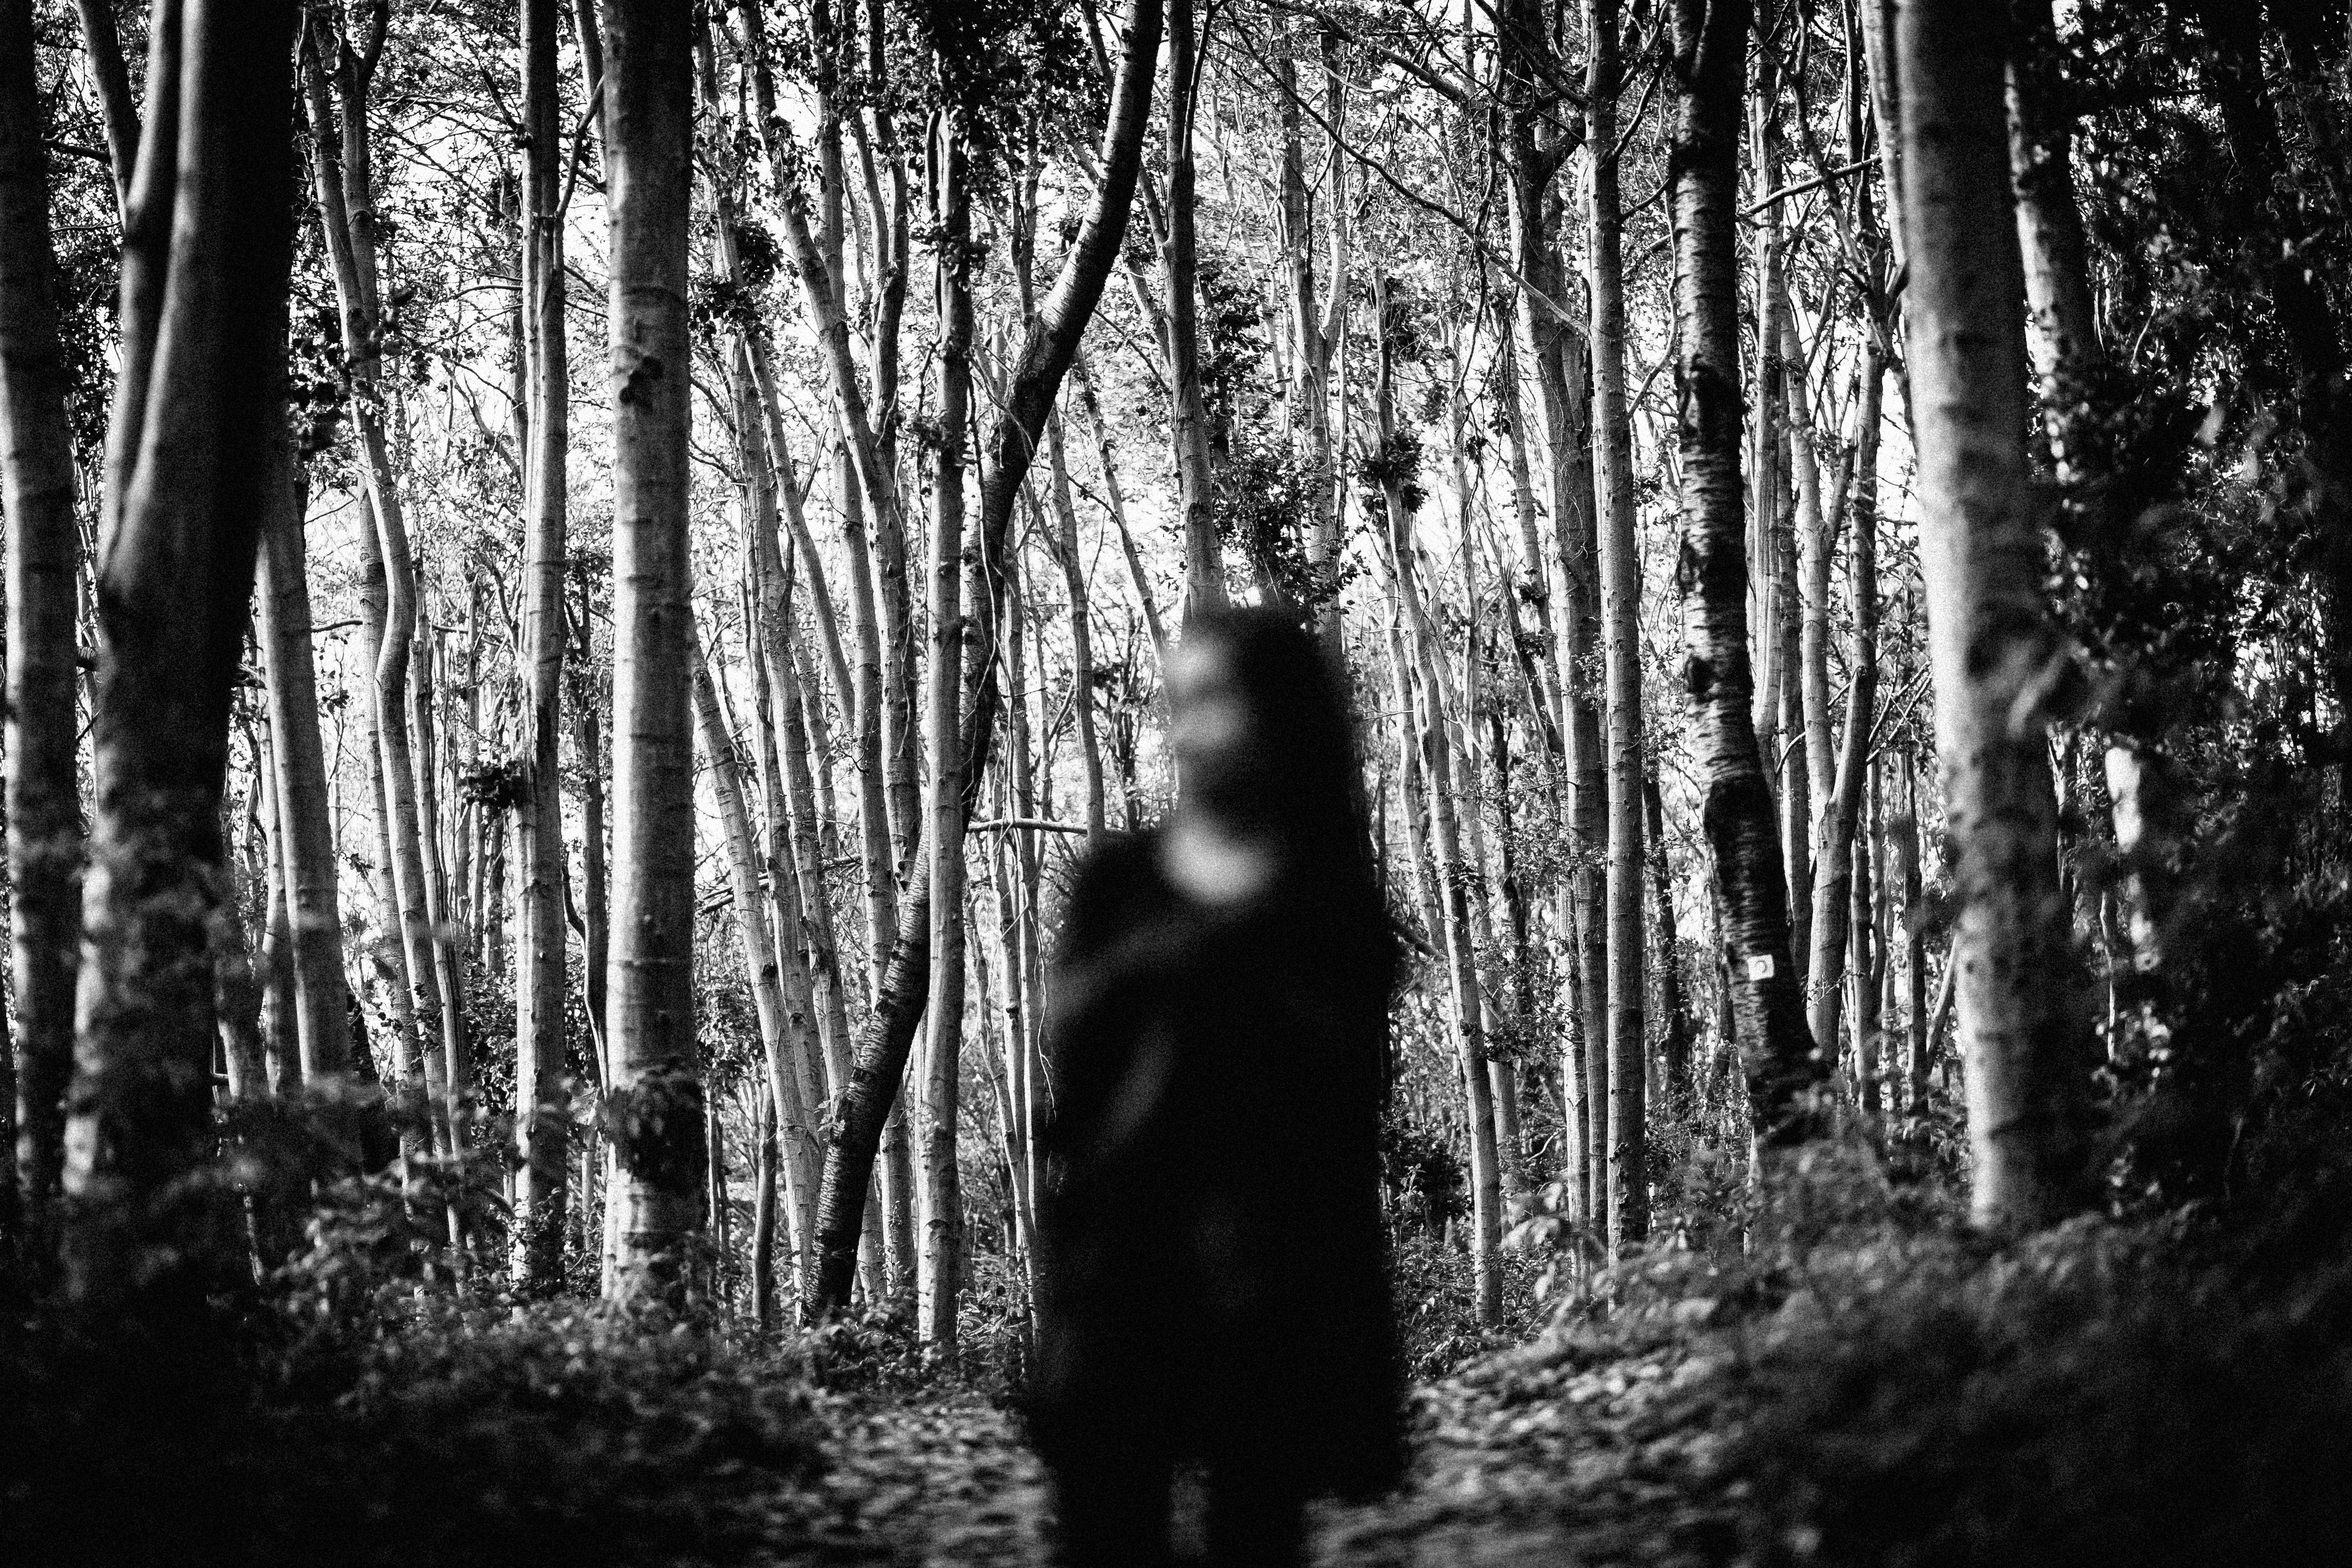 A blurred image of a person standing in the woods.